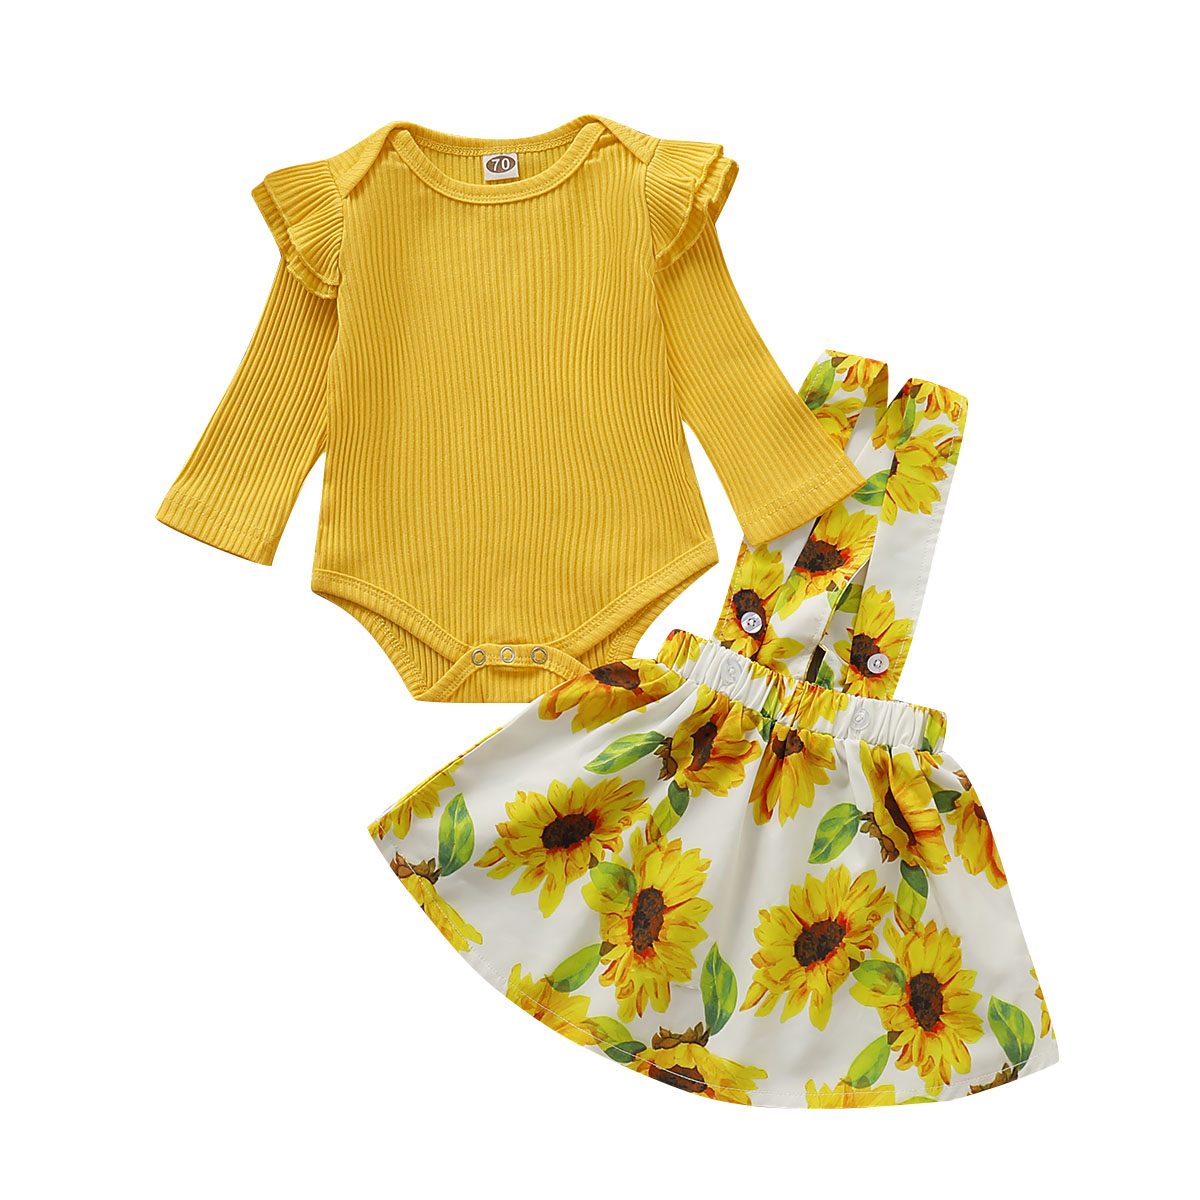 Autumn Bodysuit Outfits-Set Tops Sunflower Knitted Toddler Baby-Girls Little 2PCS Cotton